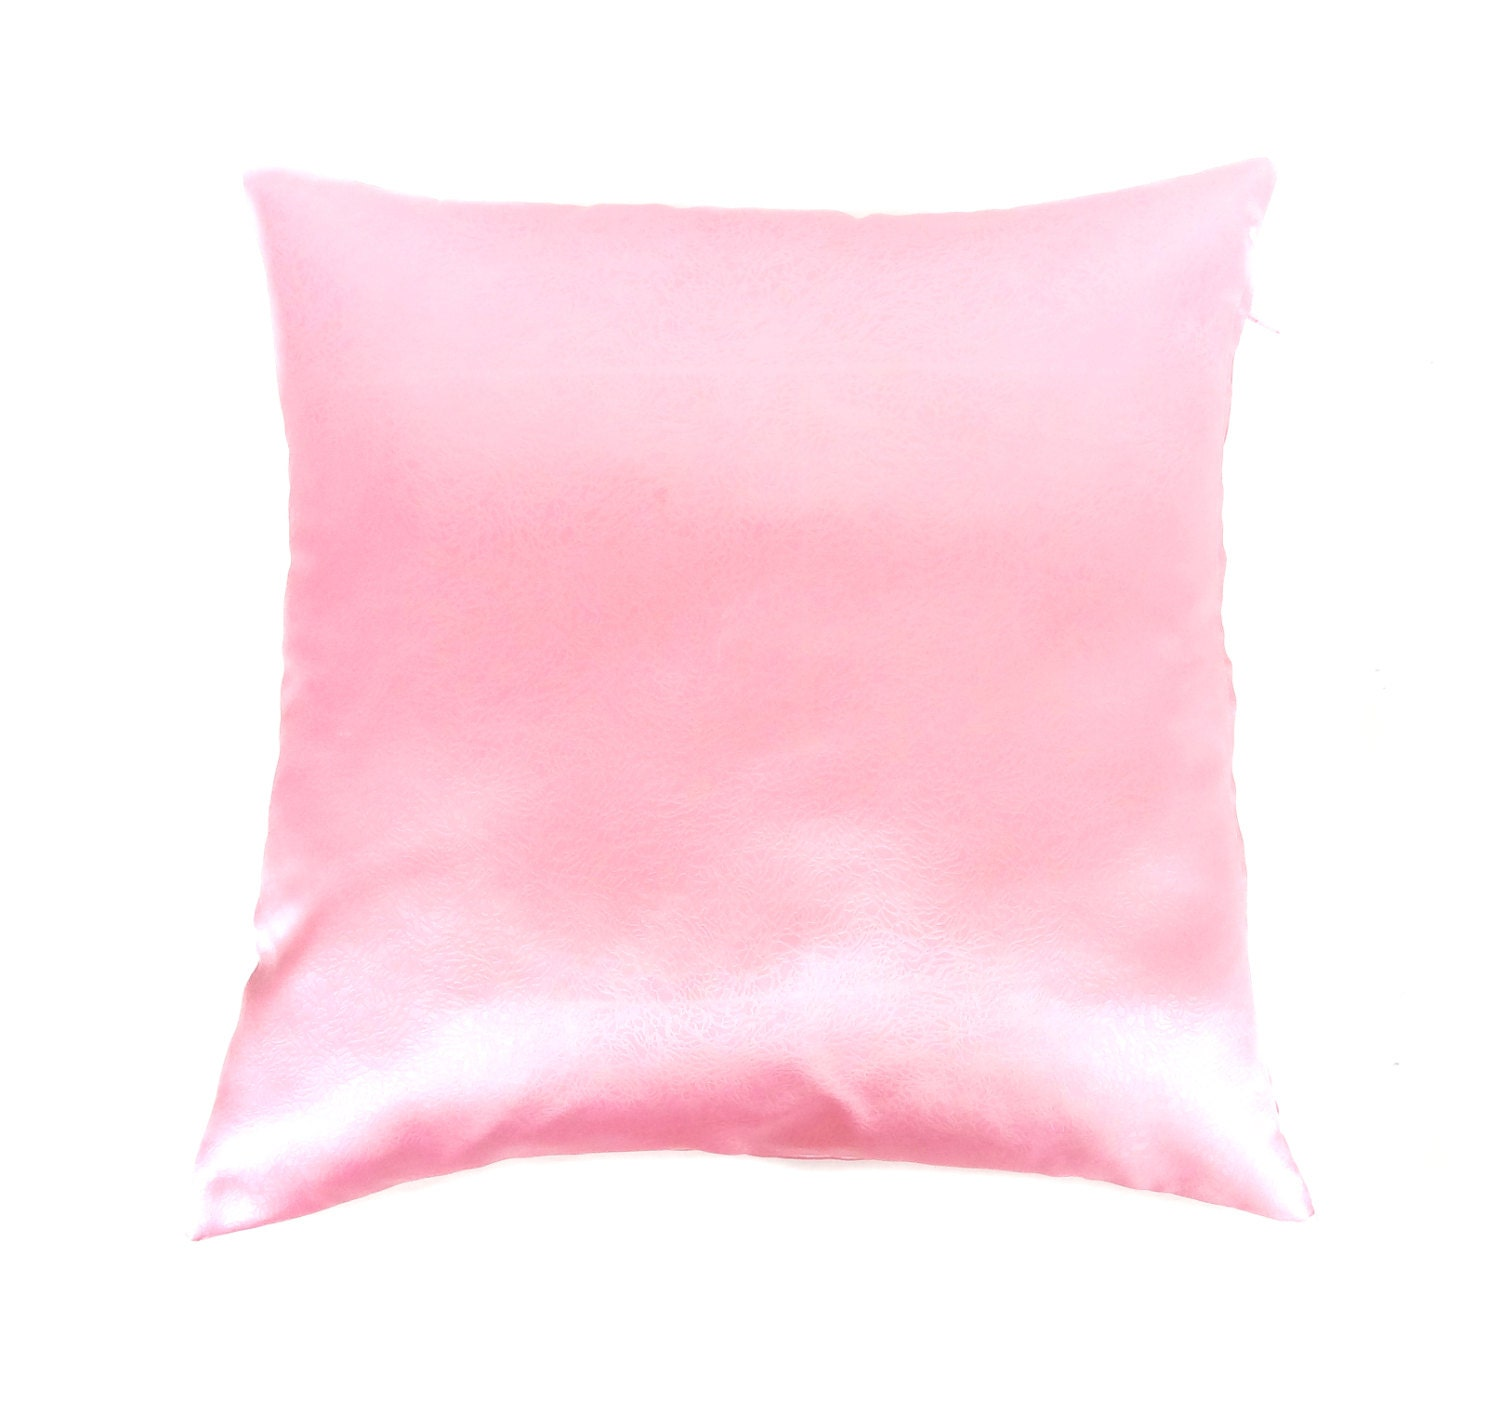 Pink Throw Pillows For Couch : Pink Pillow Covers Satin Throw Pillow Pillow by AnnushkaHomeDecor